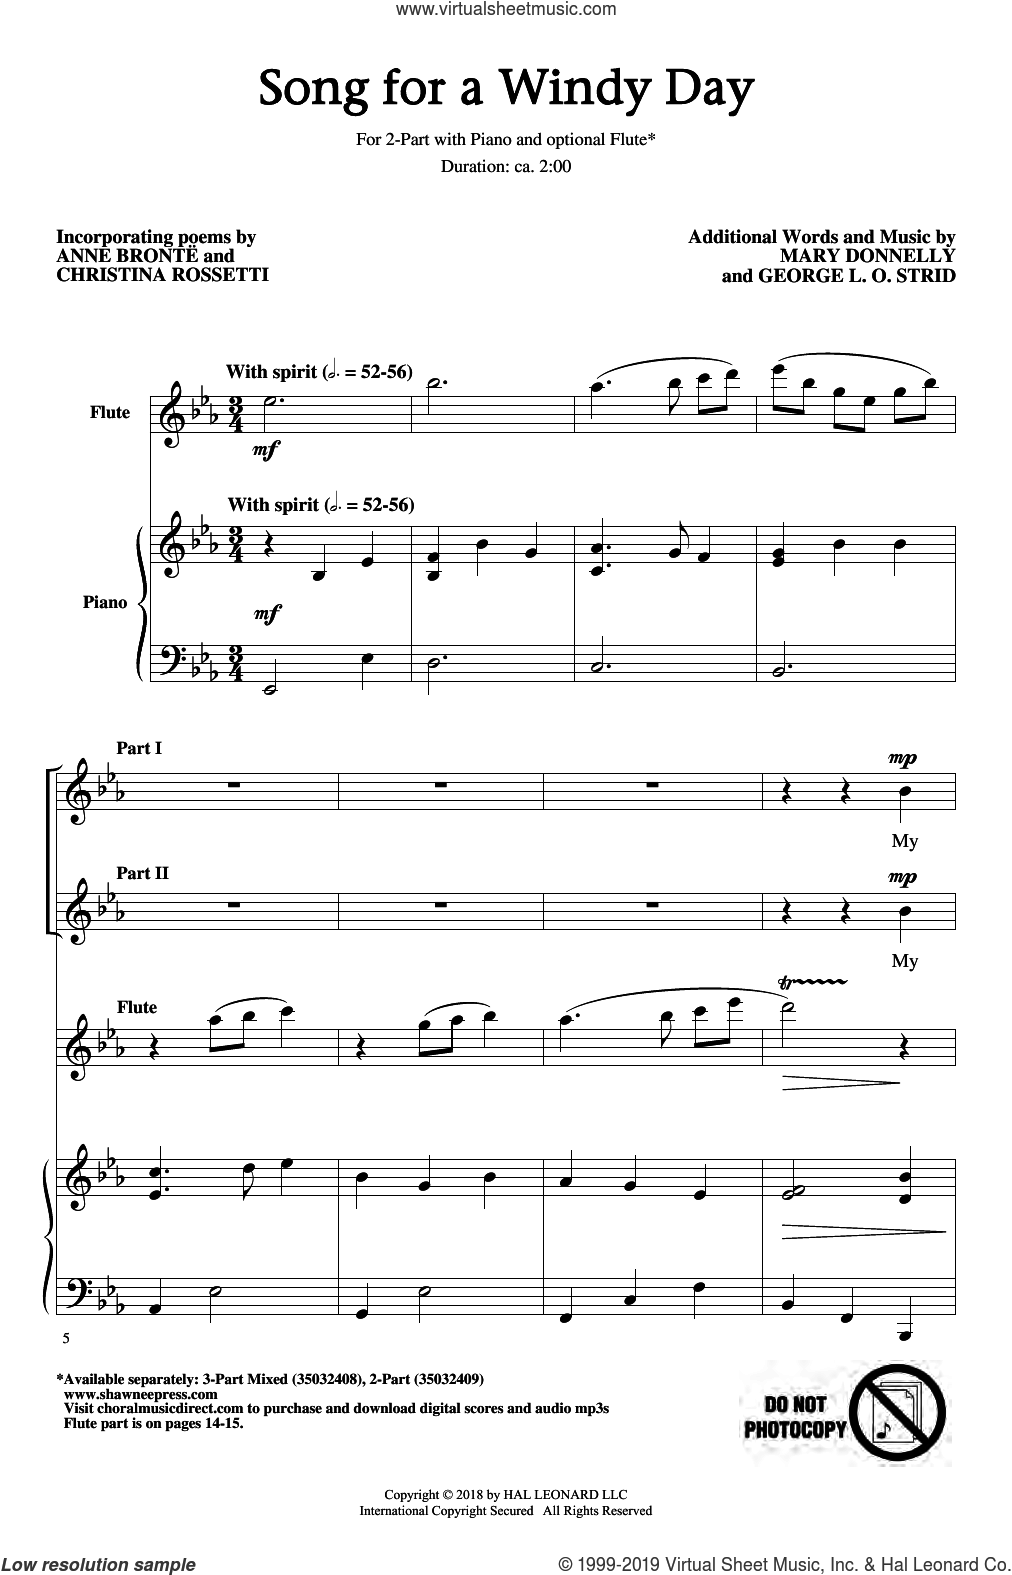 Song For A Windy Day sheet music for choir (2-Part) by Mary Donnelly, Anne Bronte, Christina Rossetti, George L.O. Strid and Mary Donnelly & George L.O. Strid, intermediate duet